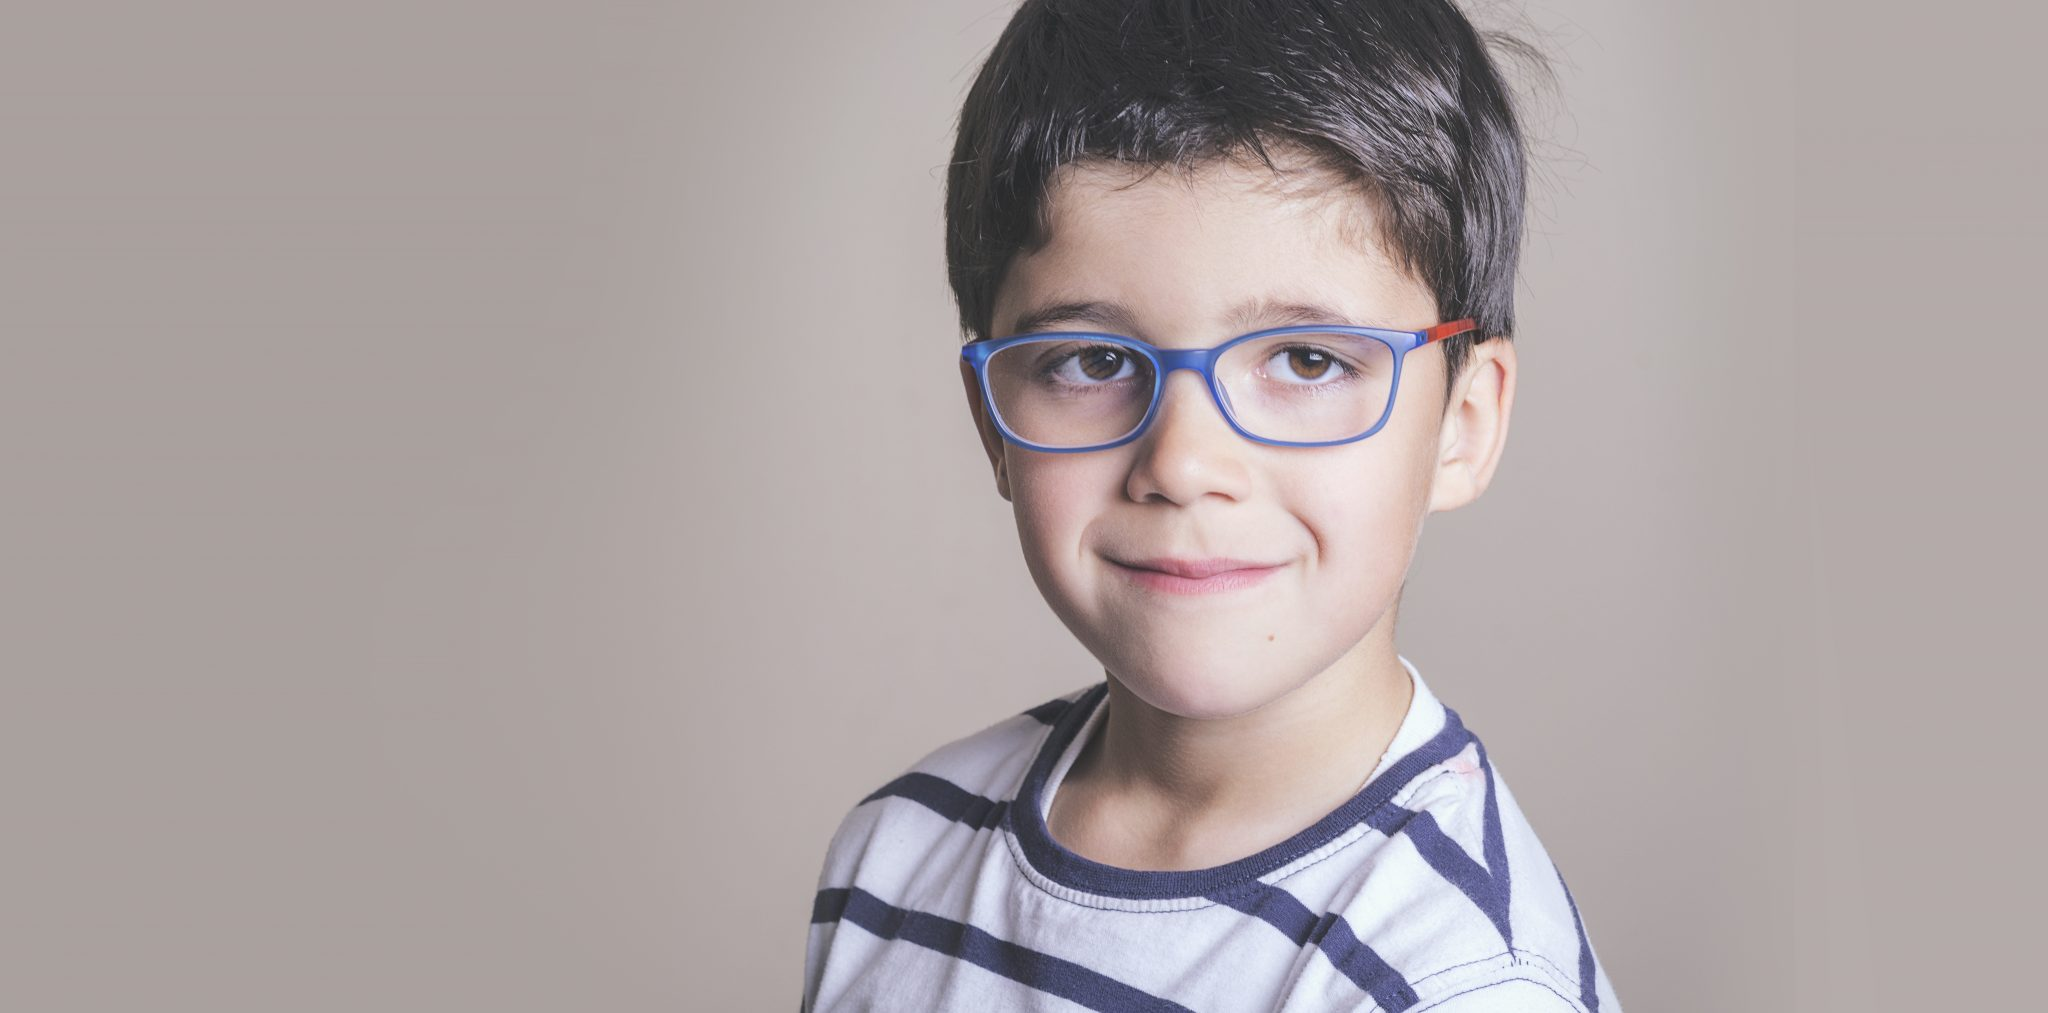 Video: Incidence of short-sightedness has increased globally in recent years